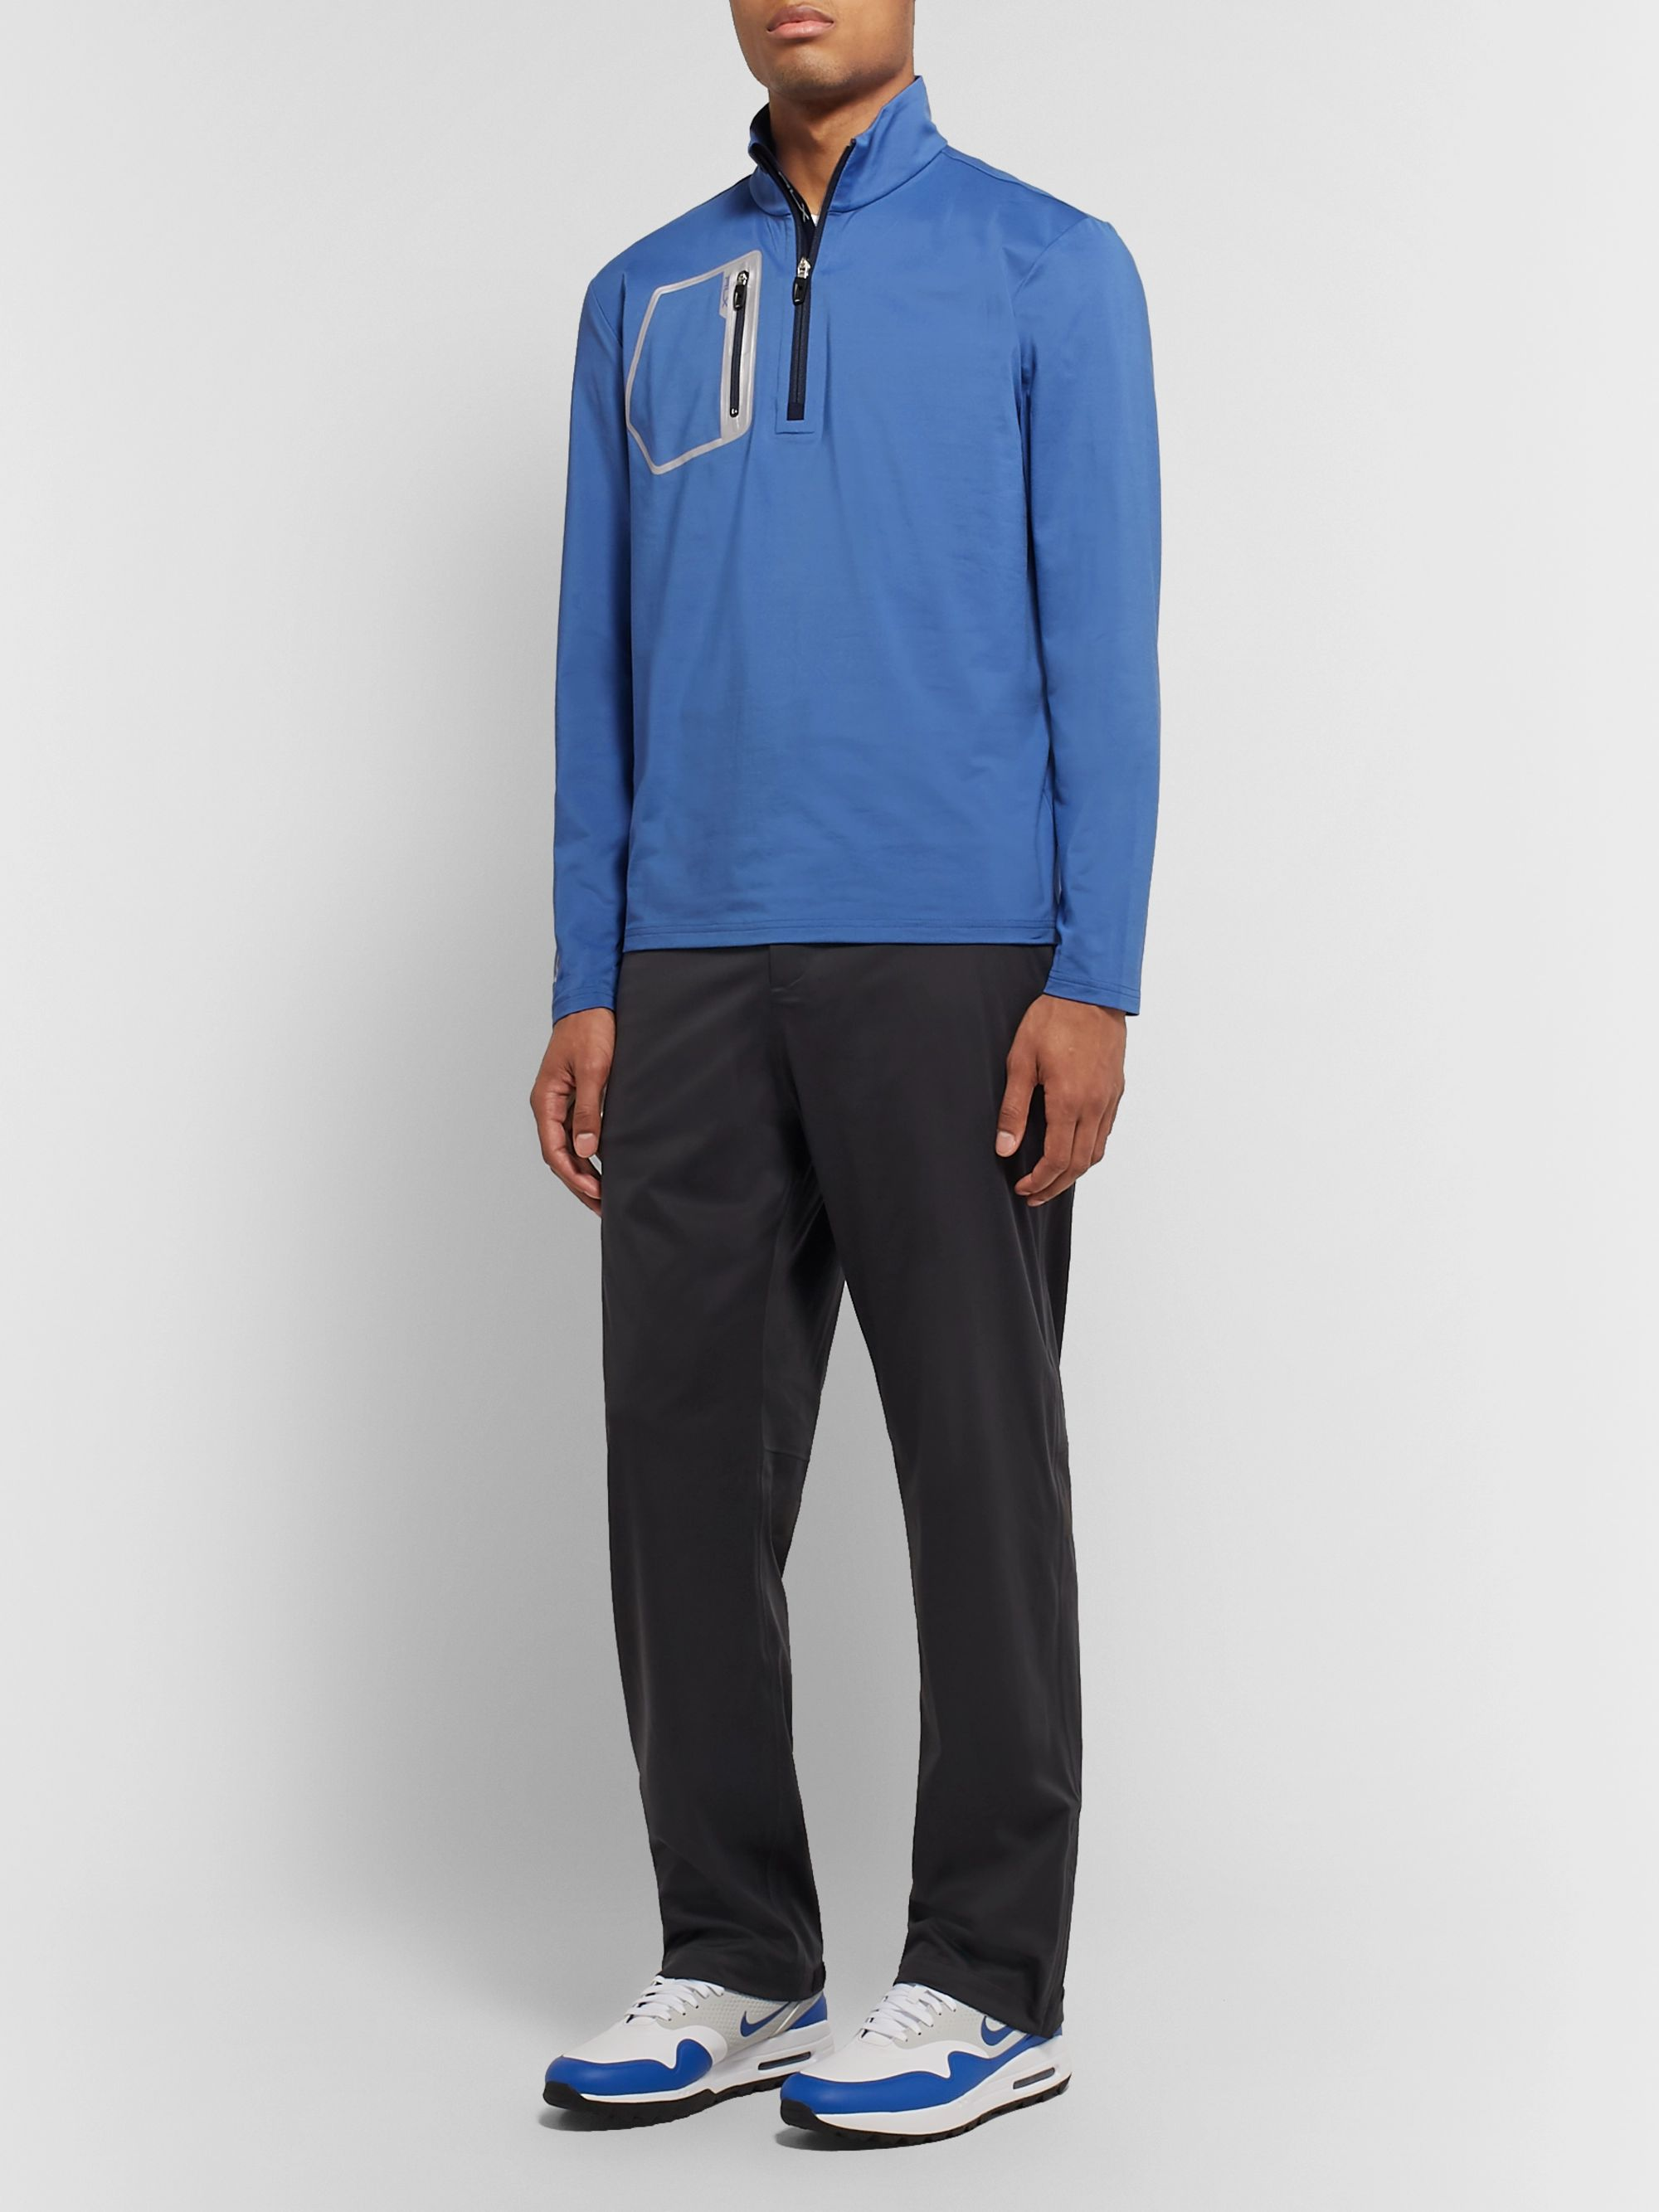 RLX Ralph Lauren Stretch-Jersey Half-Zip Golf Top